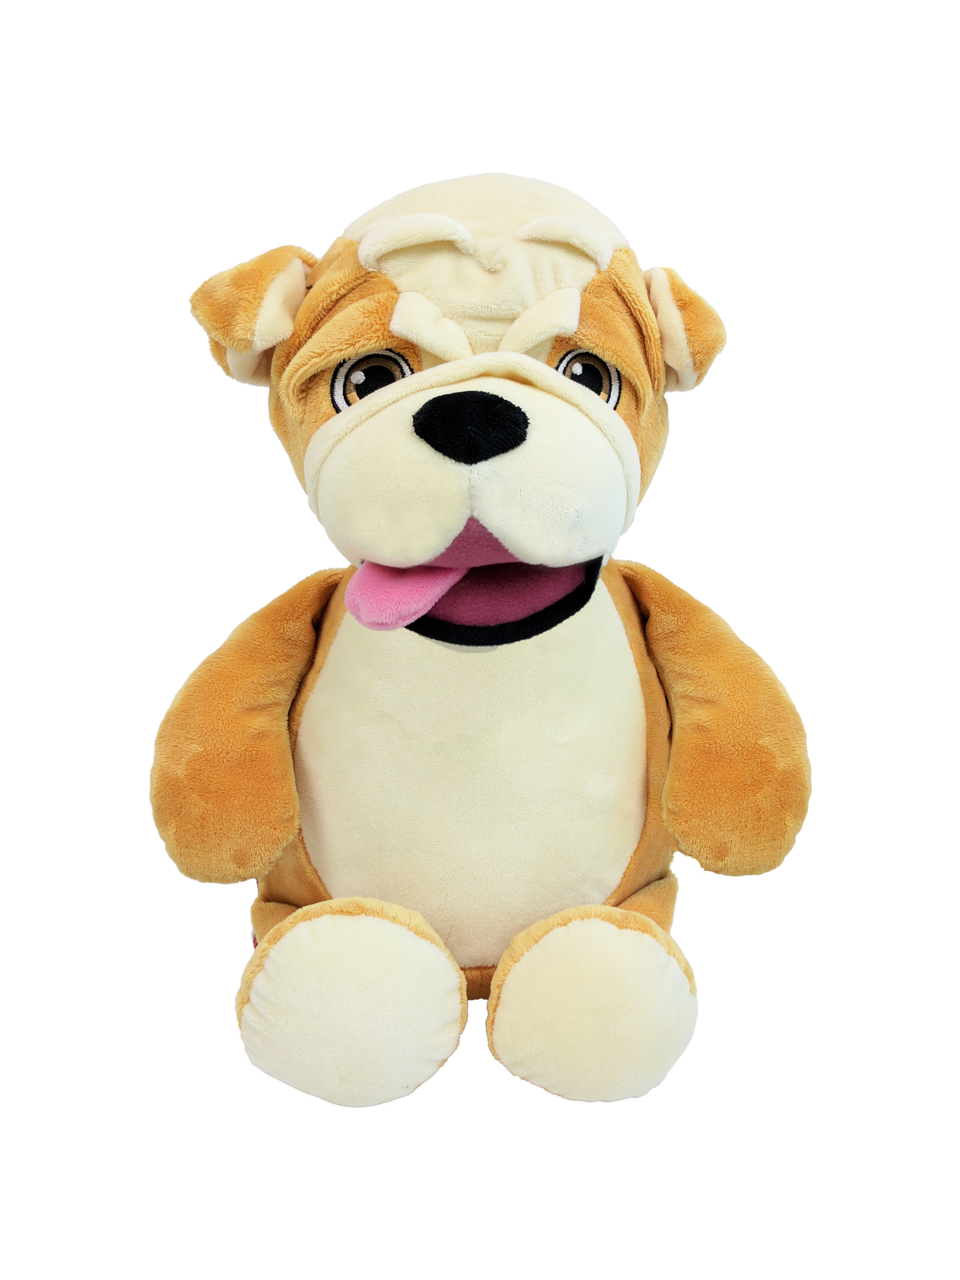 Personalised Teddy Bear - Signature Bulldog